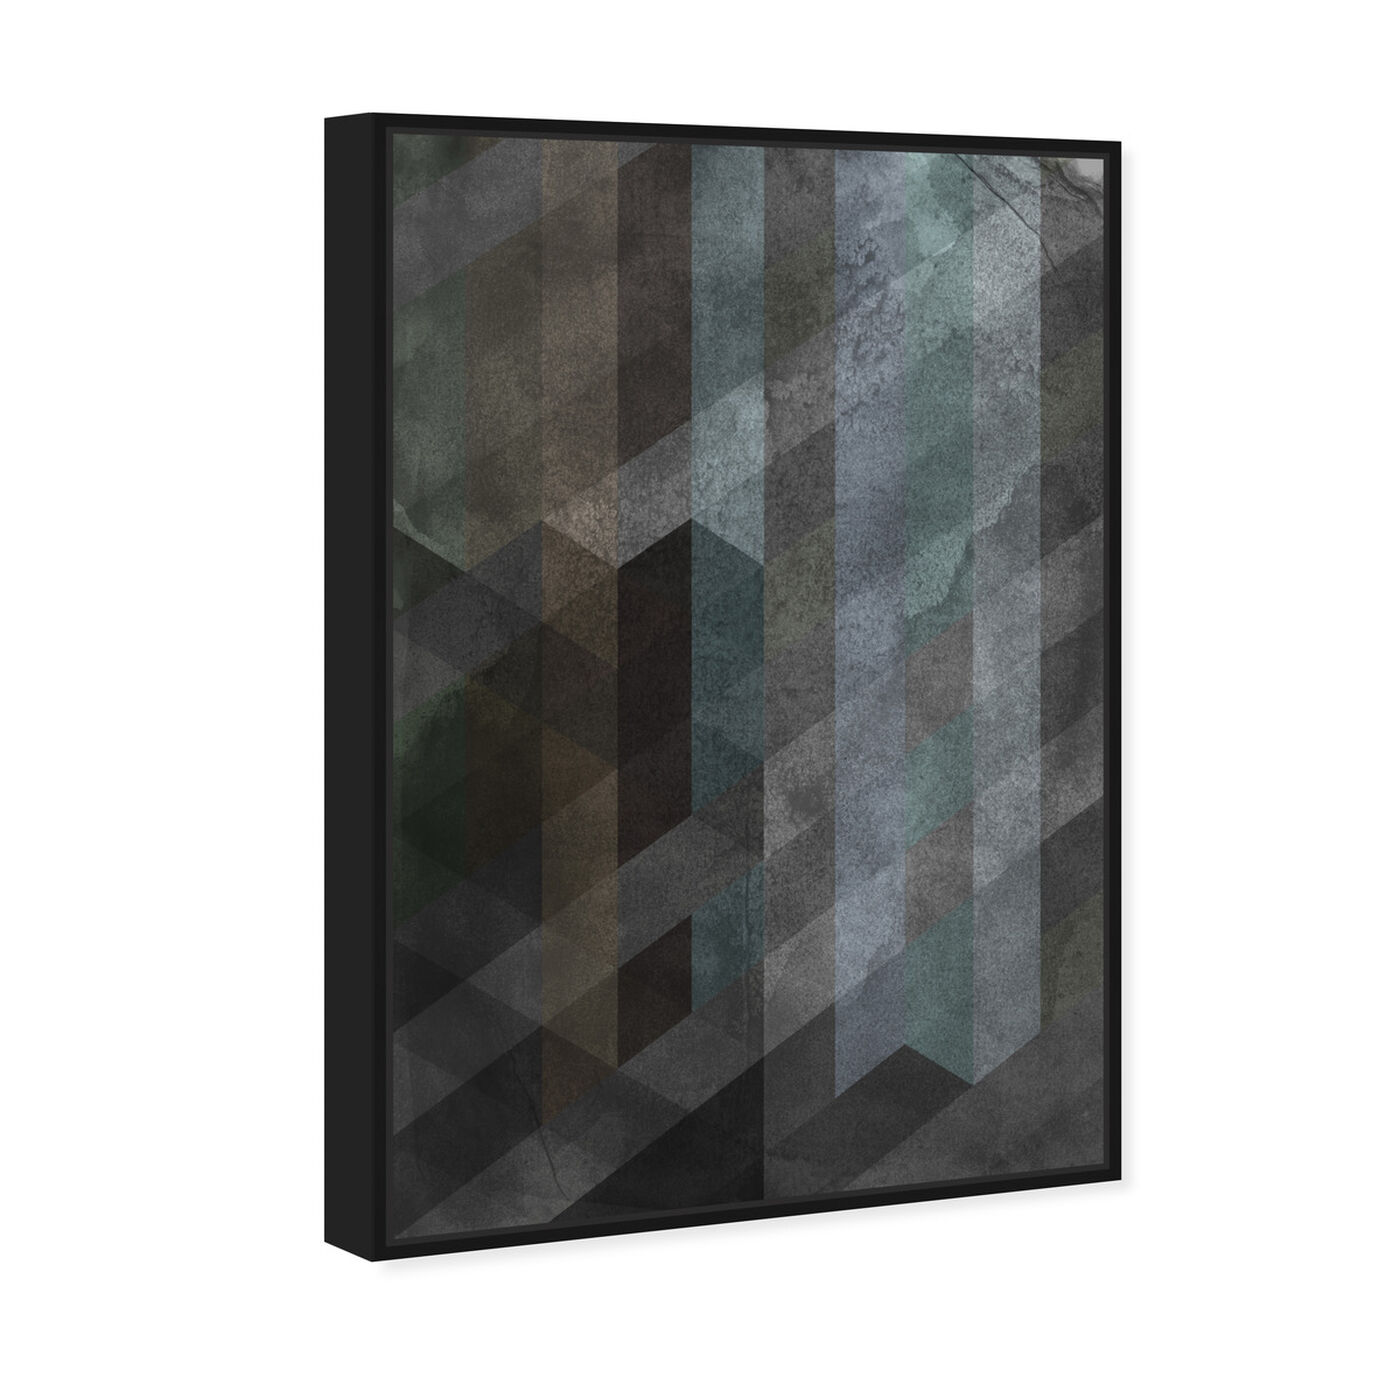 Angled view of Steel featuring abstract and textures art.